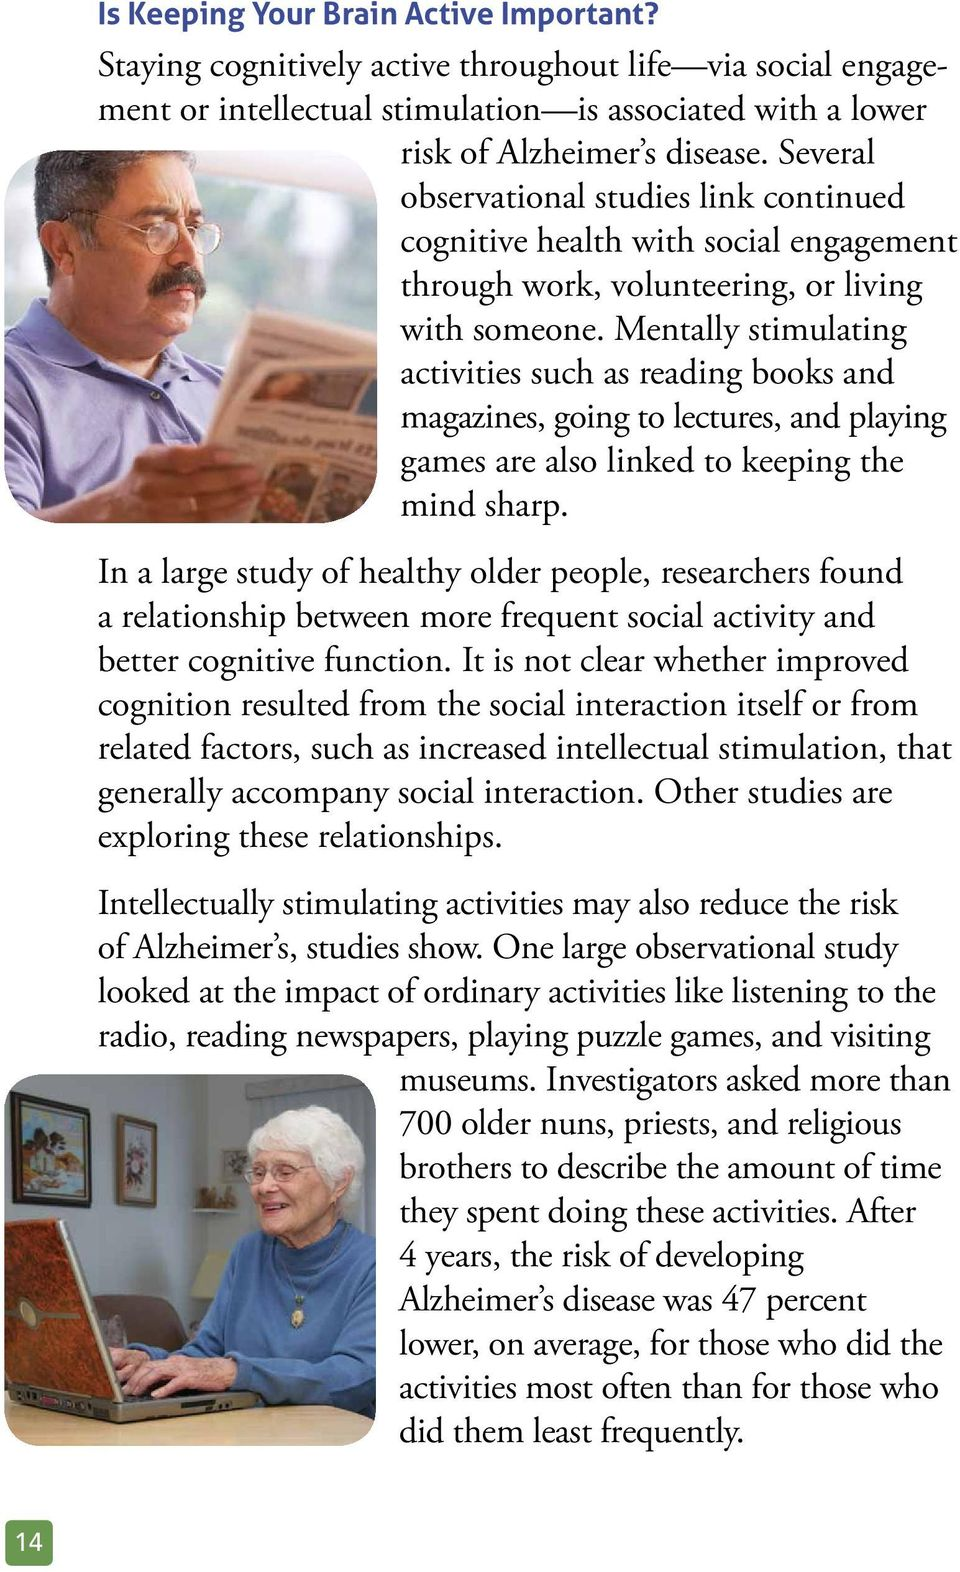 Mentally stimulating activities such as reading books and magazines, going to lectures, and playing games are also linked to keeping the mind sharp.